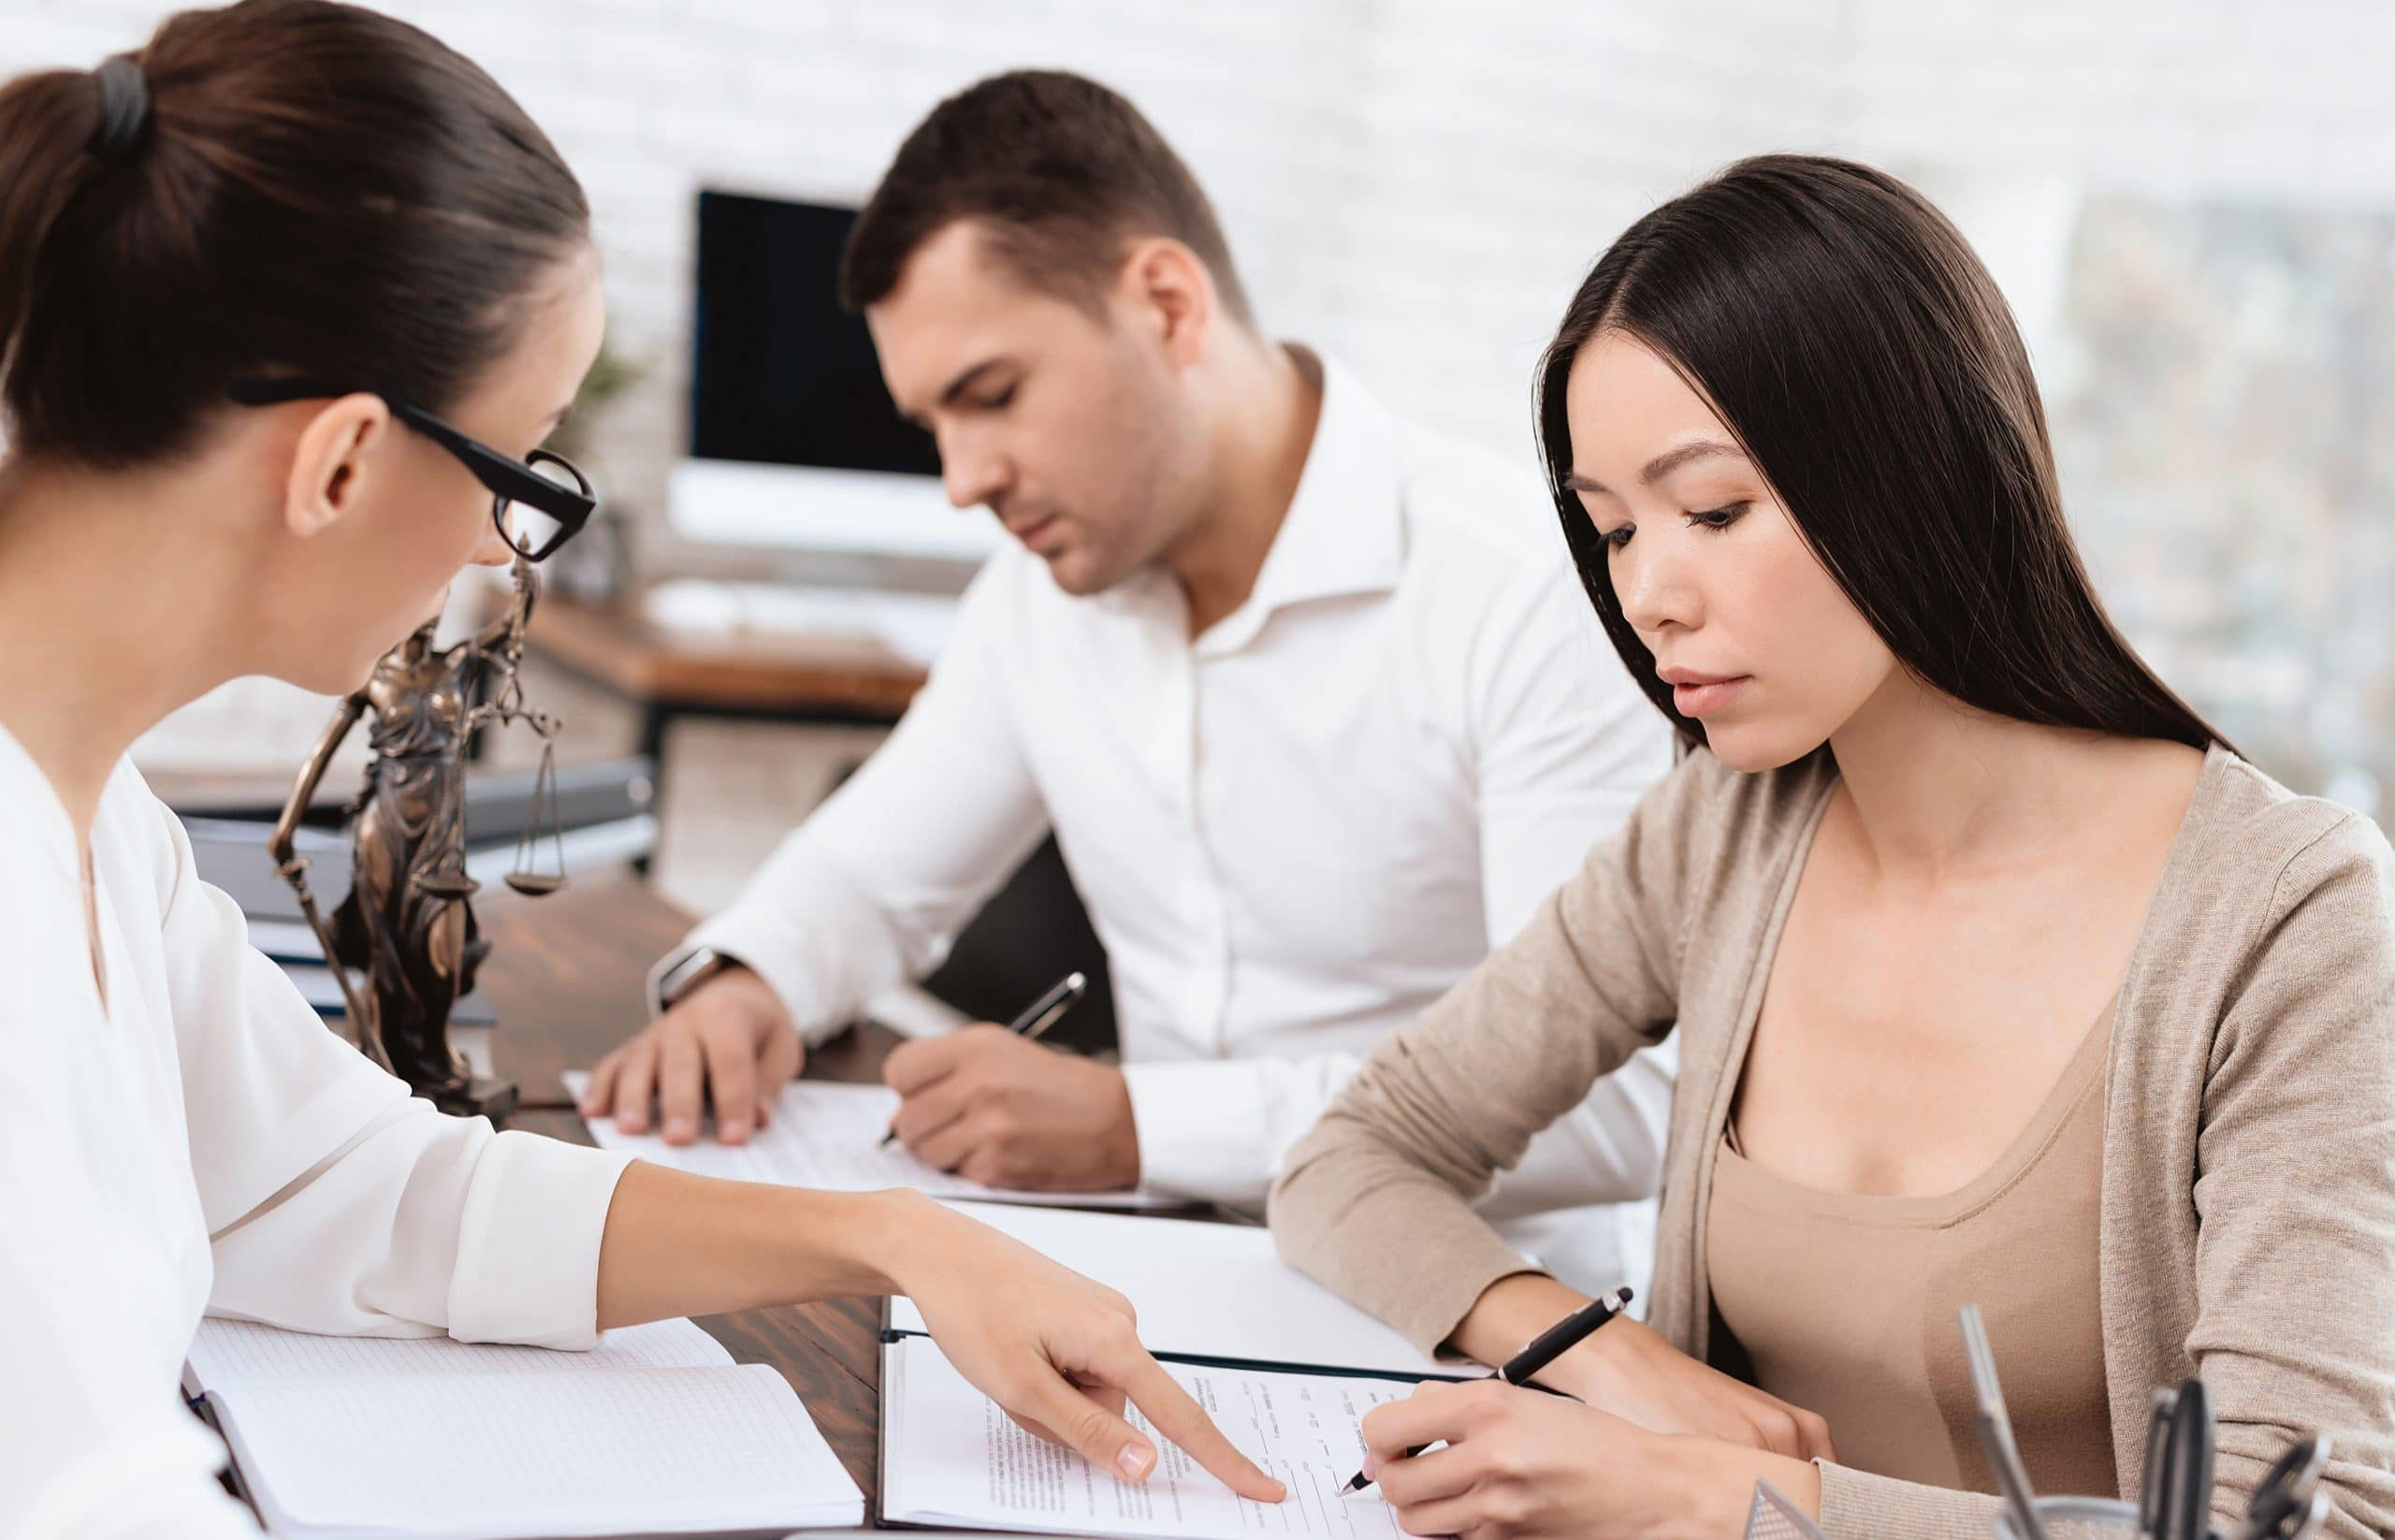 This is an image of a lawyer working with clients and agreeing on a settlement.